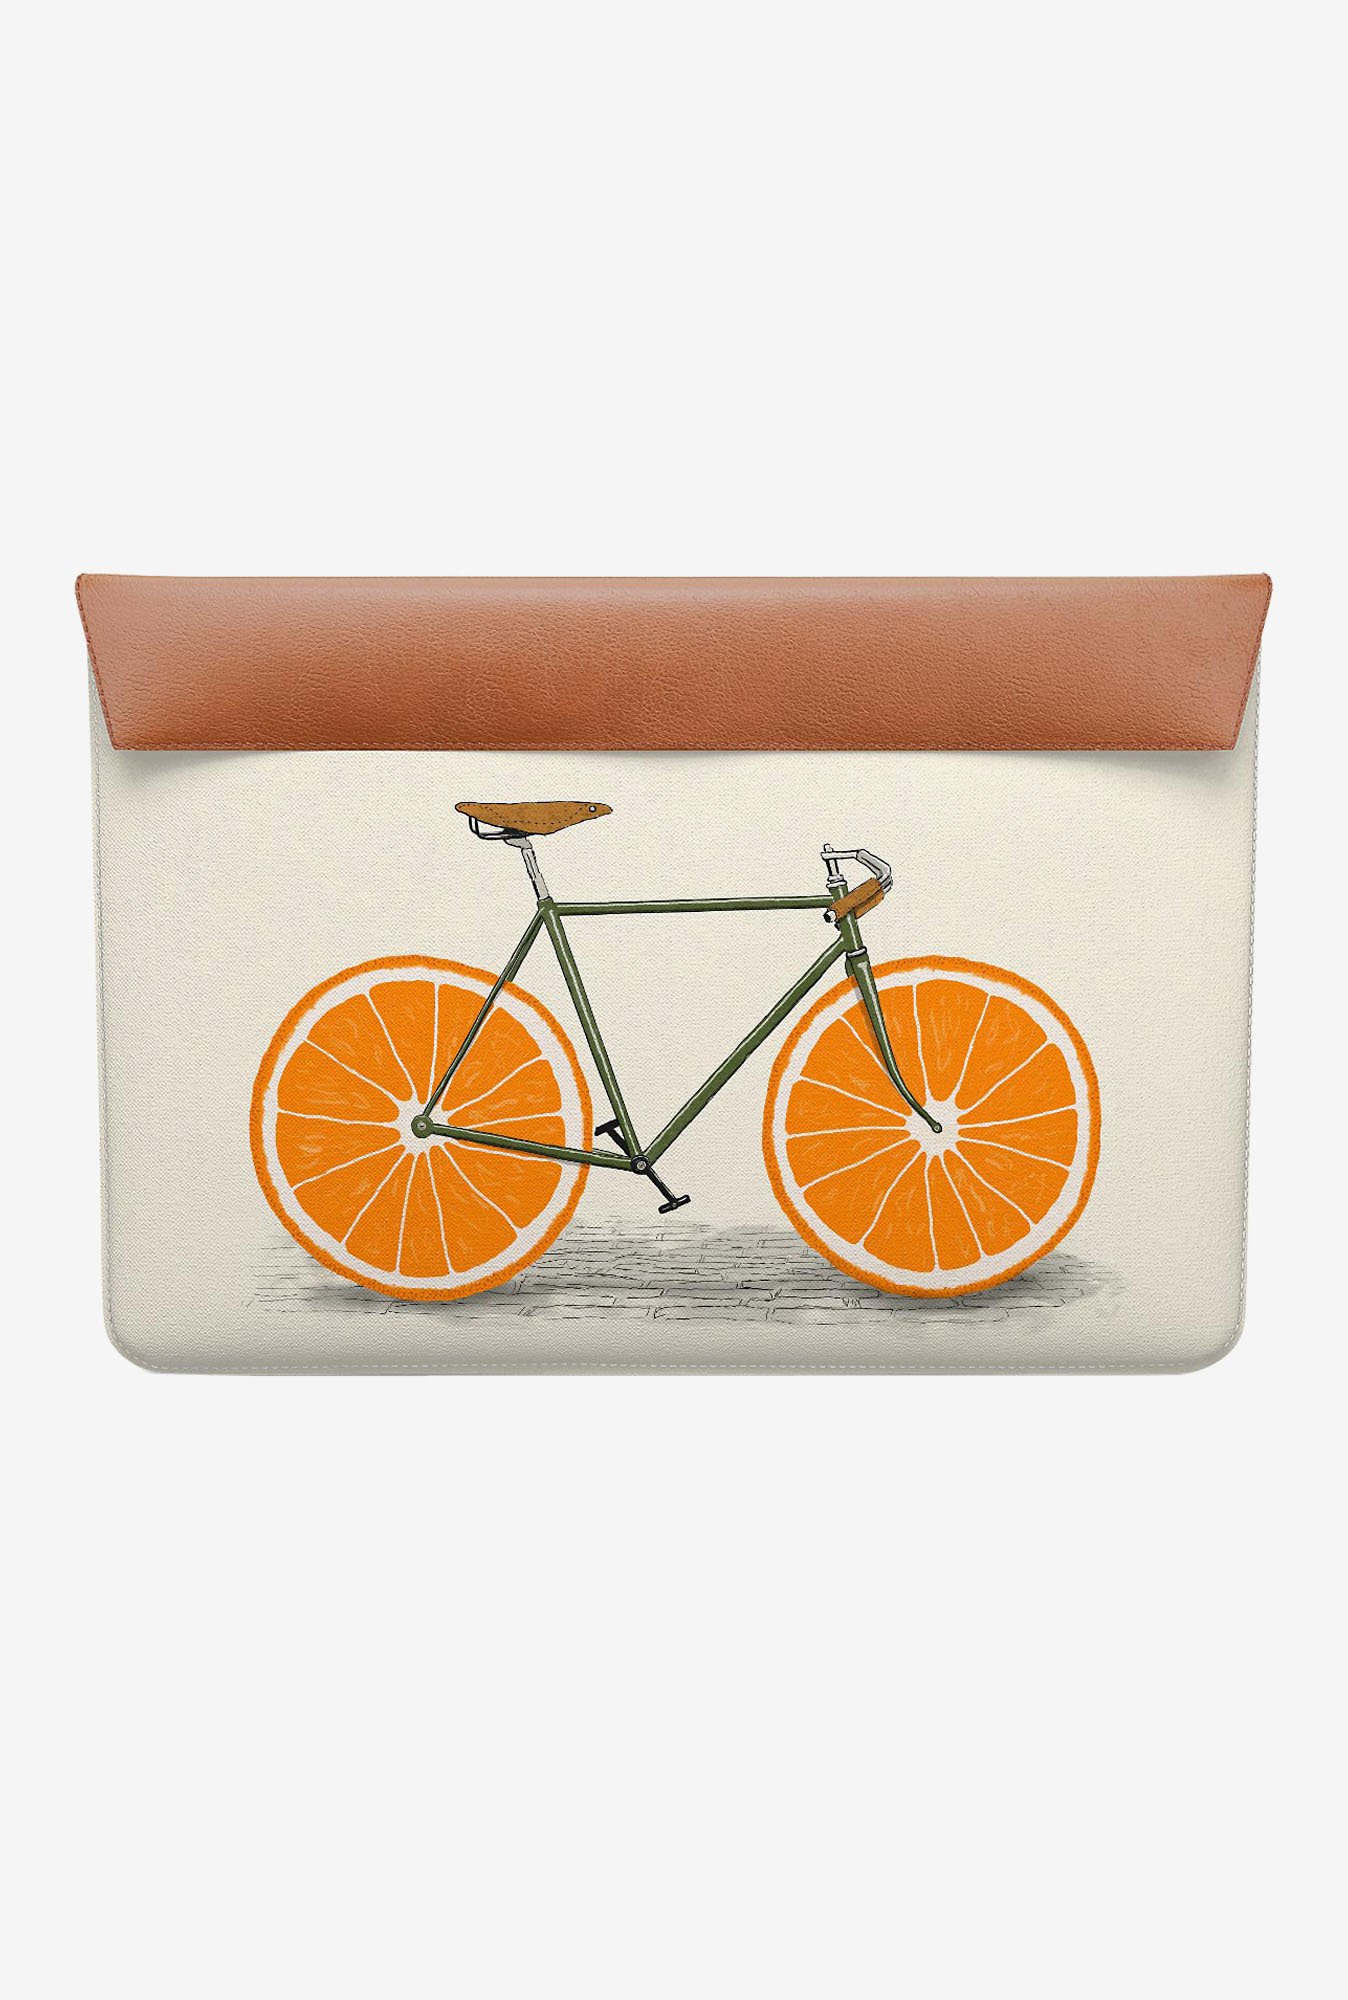 DailyObjects Orange Wheels MacBook Air 13 Envelope Sleeve